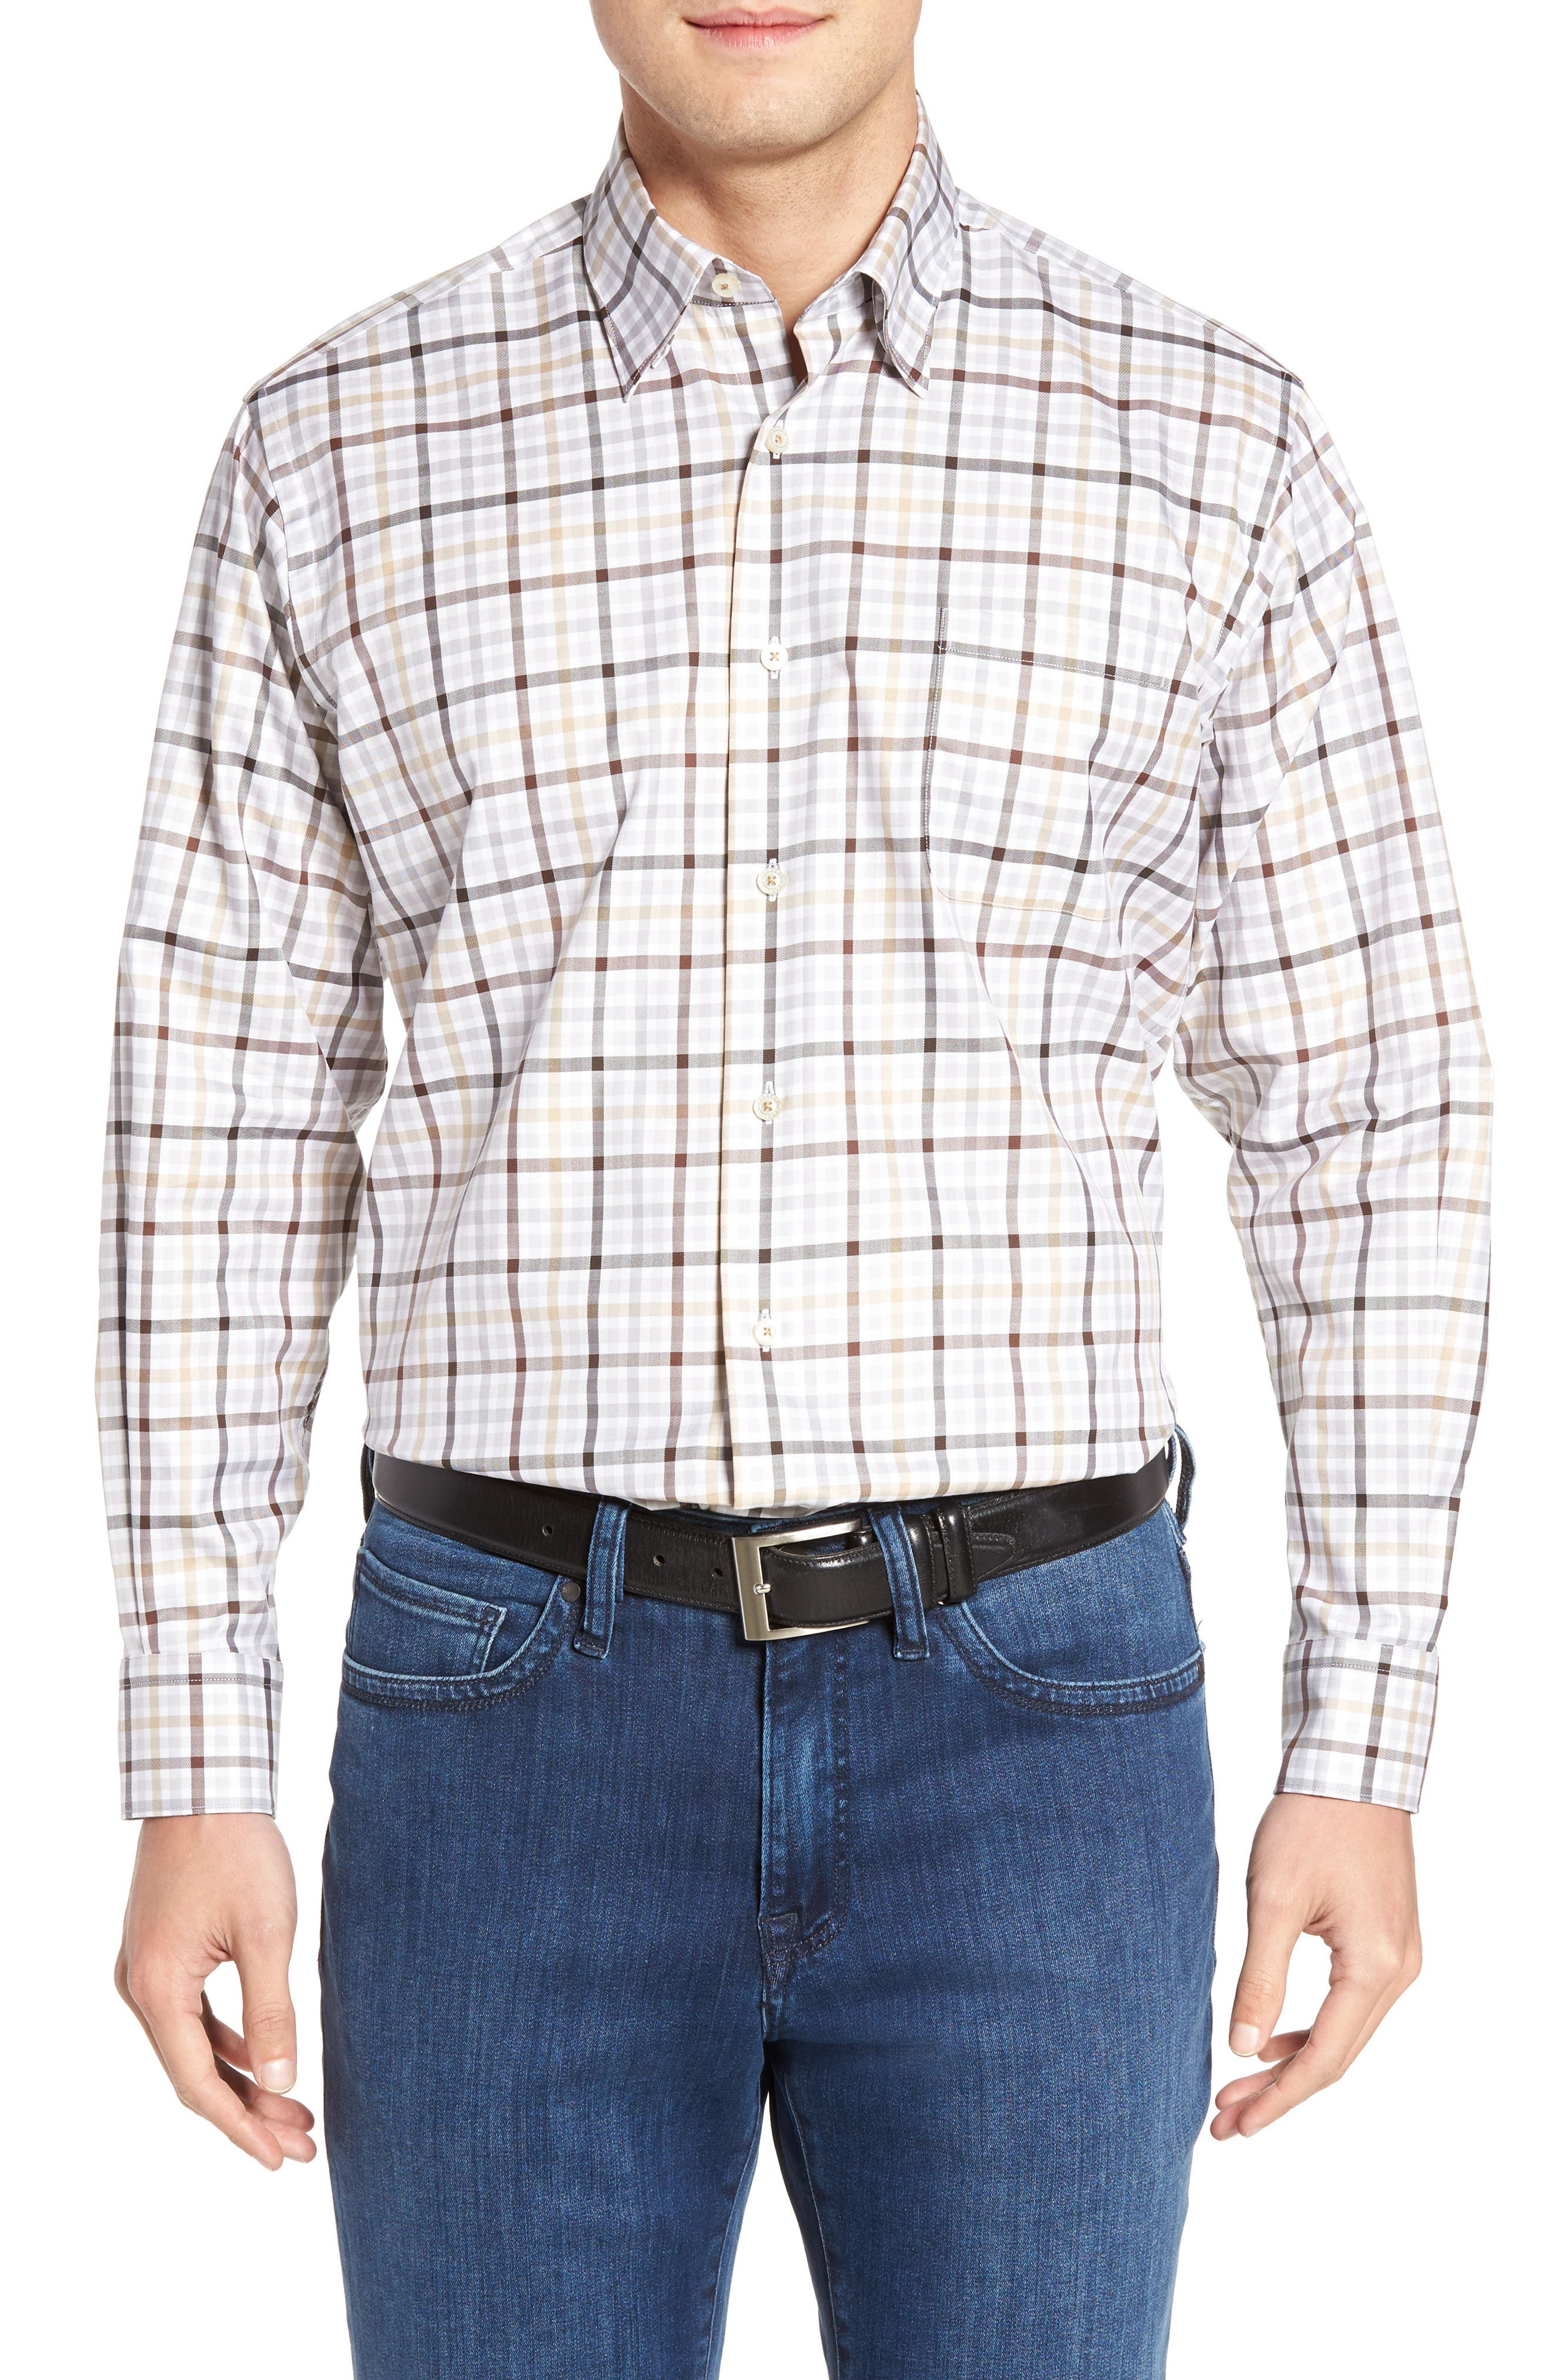 Anderson Classic Fit Plaid Micro Twill Sport Shirt,                         Main,                         color,